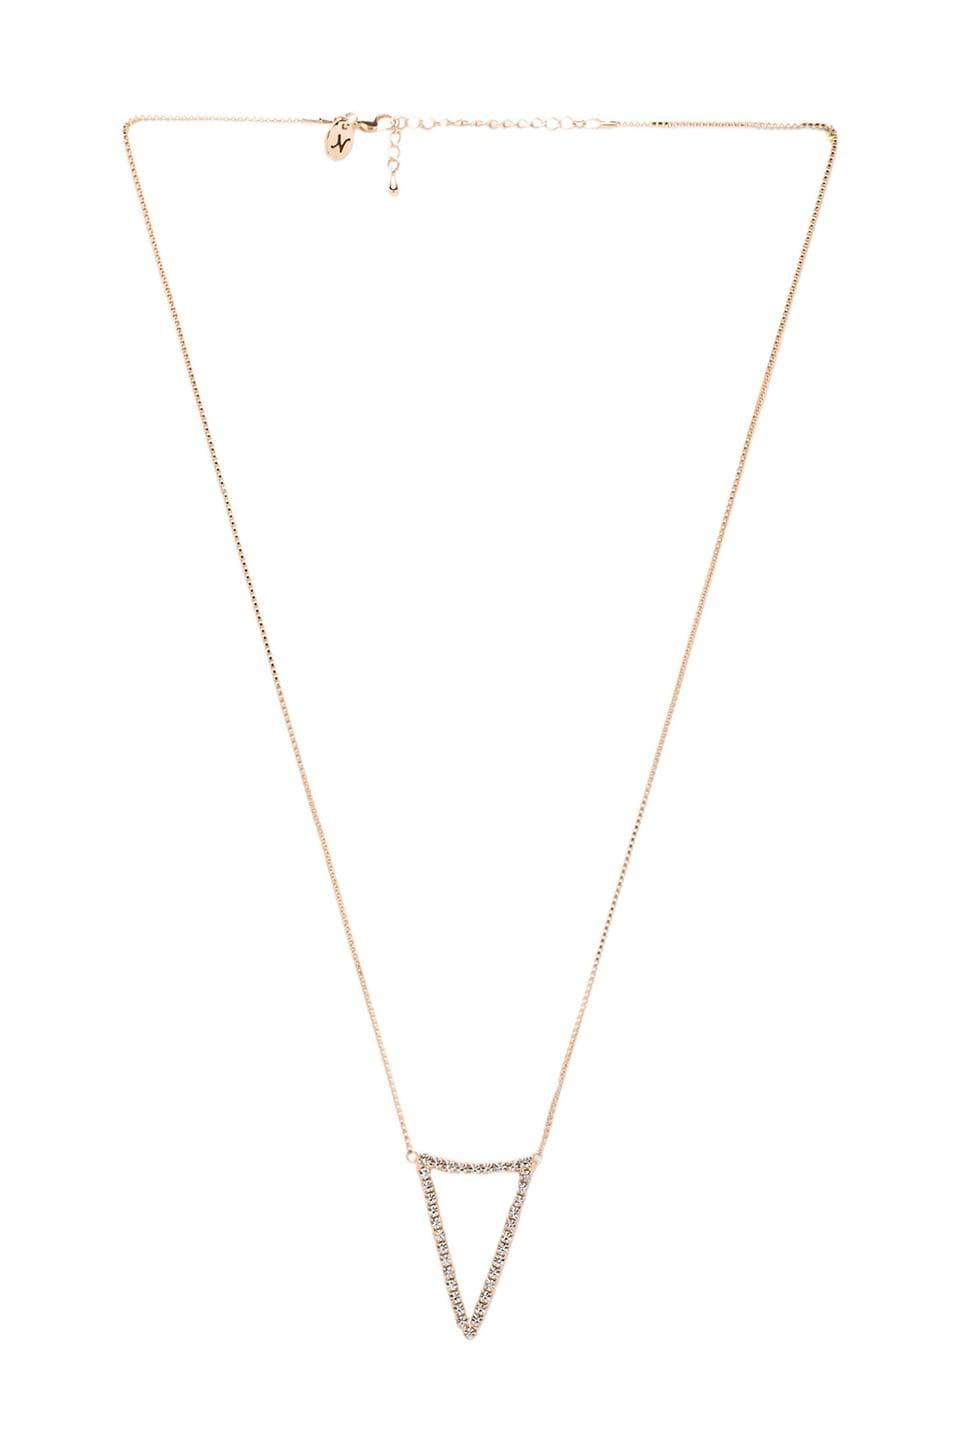 Nicole Meng Spire II Necklace in Gold/Crystal